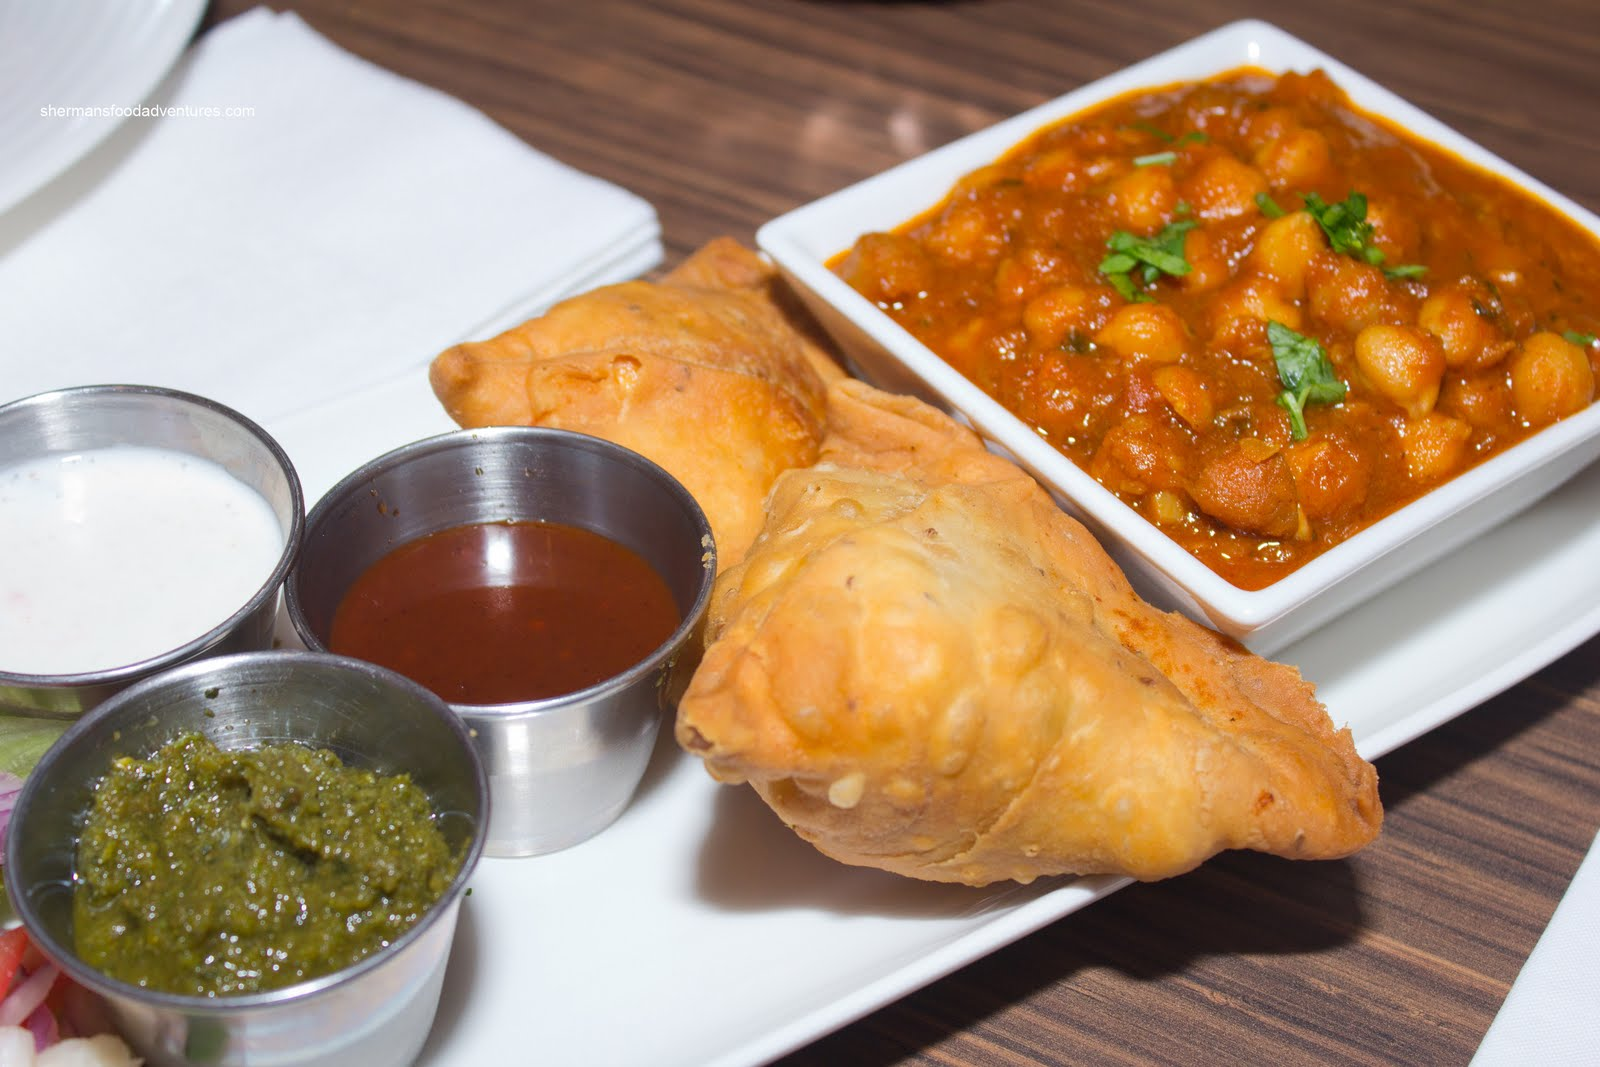 indian cuisine research Sitar india palace: best indian food in the triangle - see 56 traveler reviews, candid photos, and great deals for durham, nc, at tripadvisor.